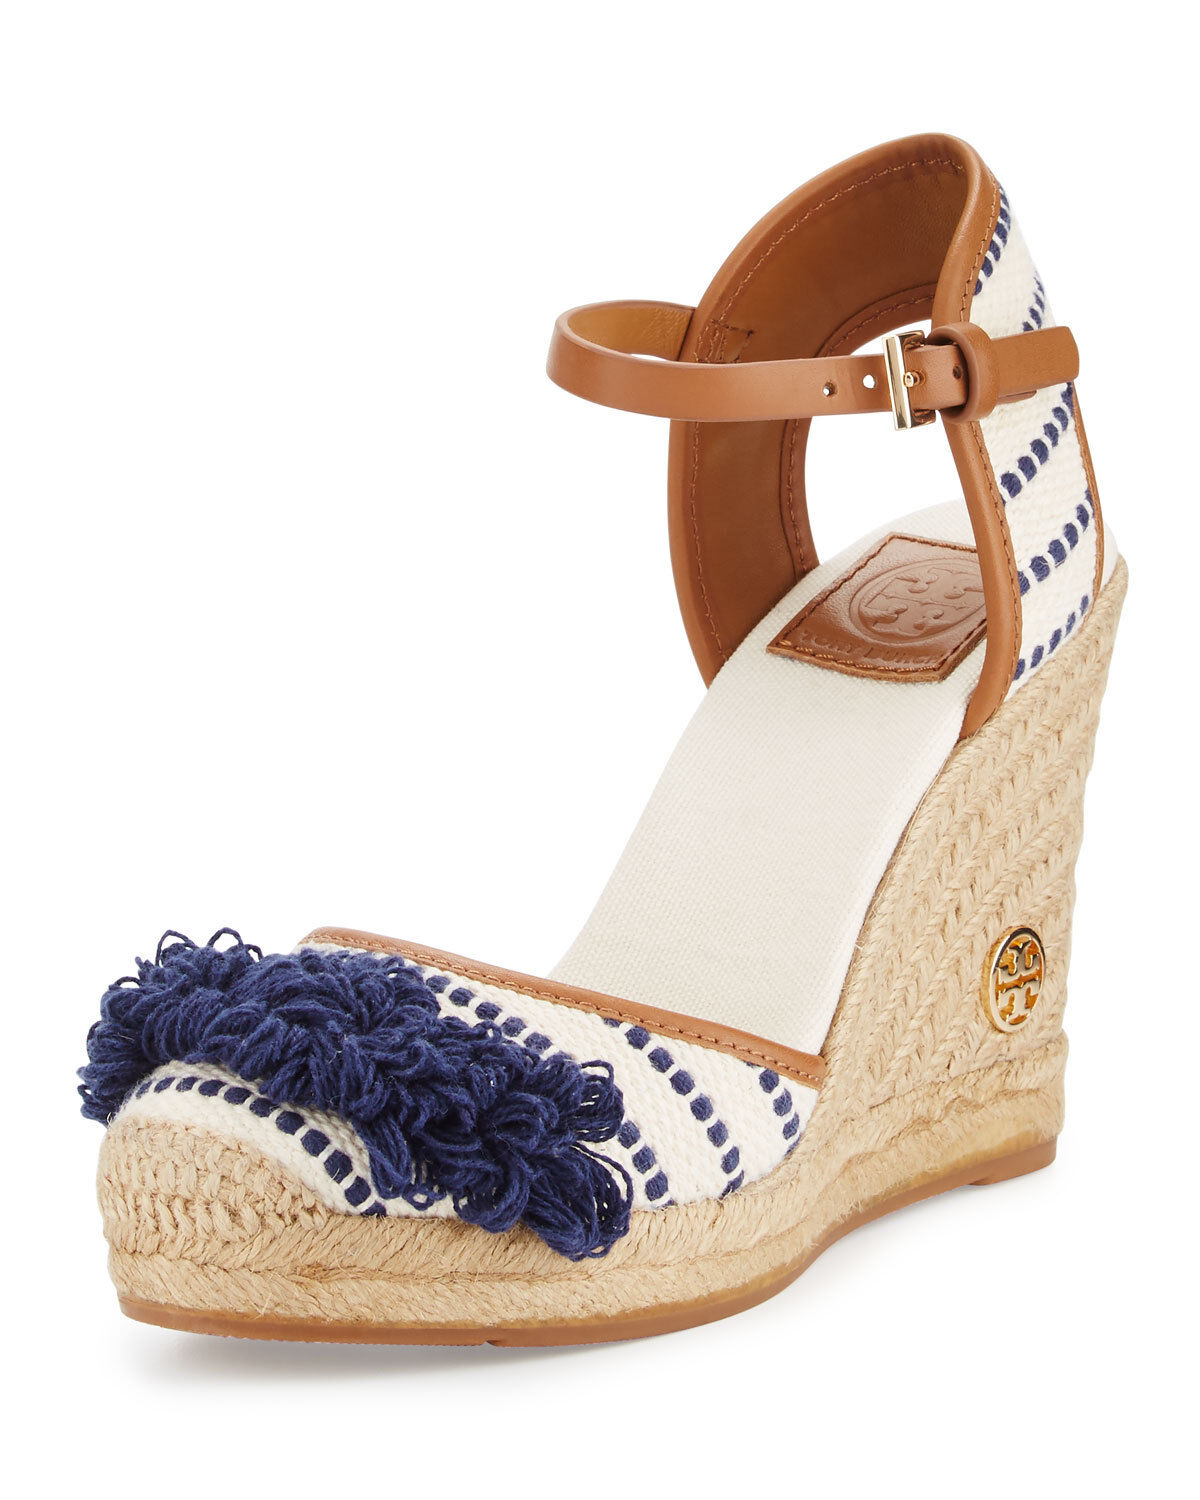 Tory Burch Shaw Striped Wedge Espadrille White Navy shoes New  250 size 10.5